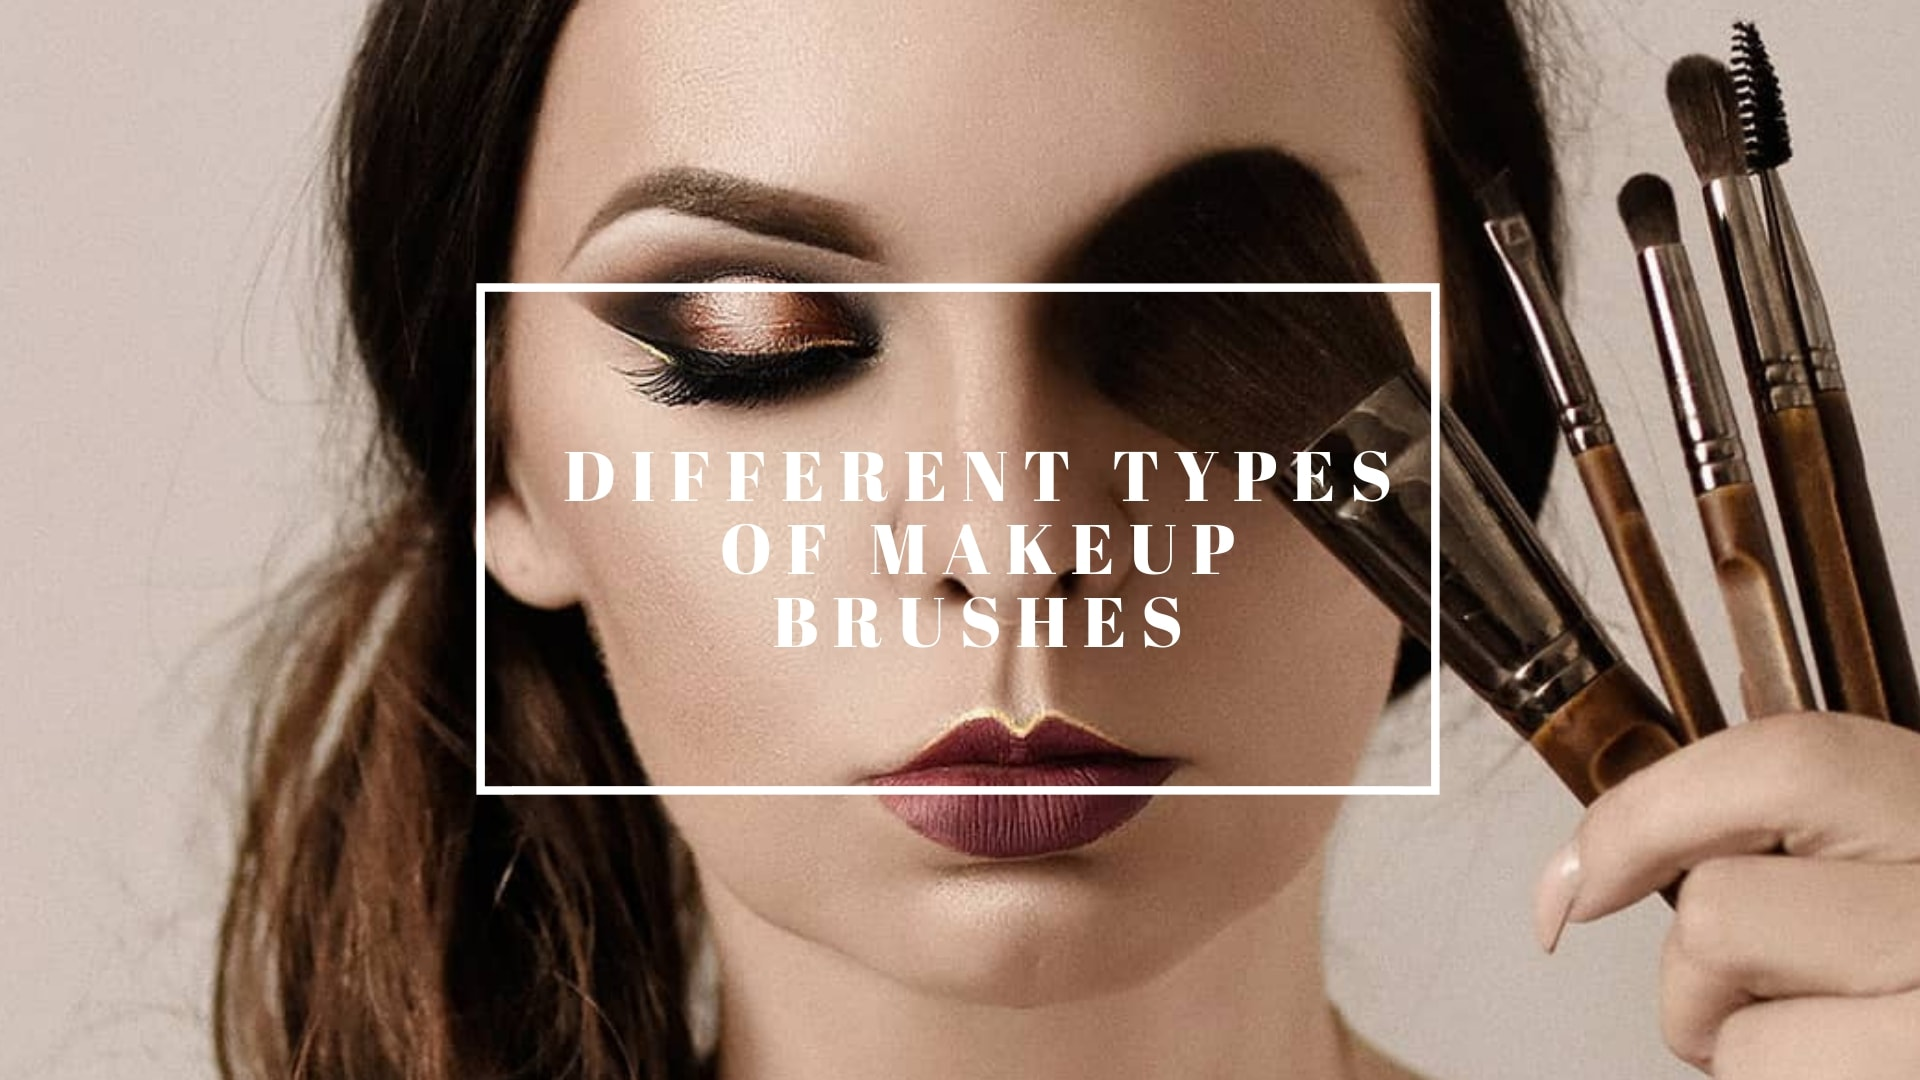 Why different types of makeup brushes and available in market and what are different types are?